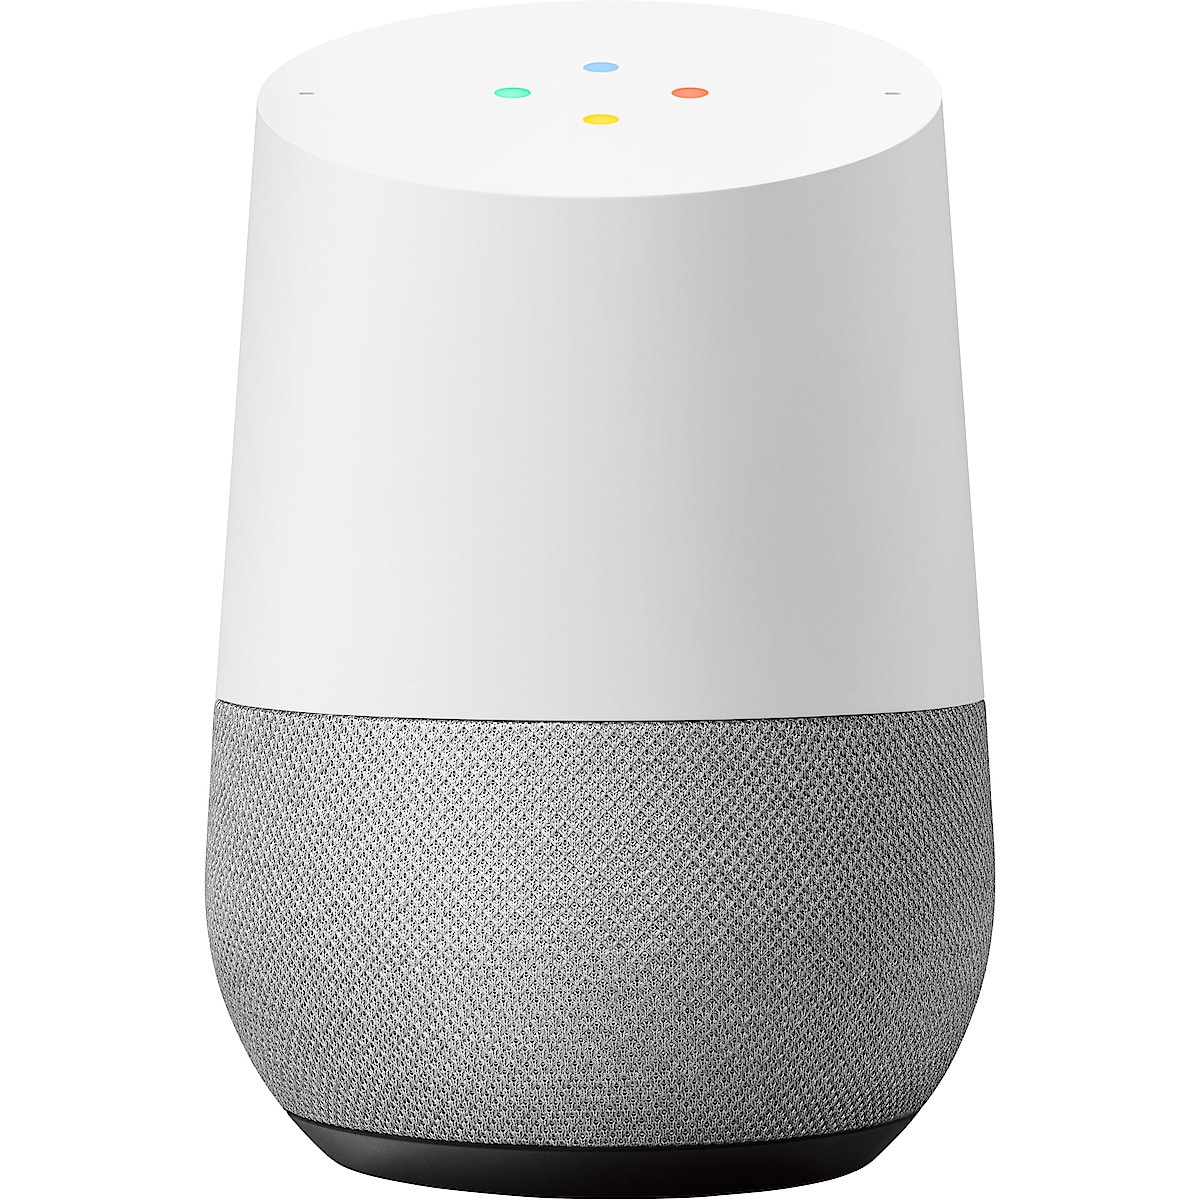 Röstassistent Google Home svensk version